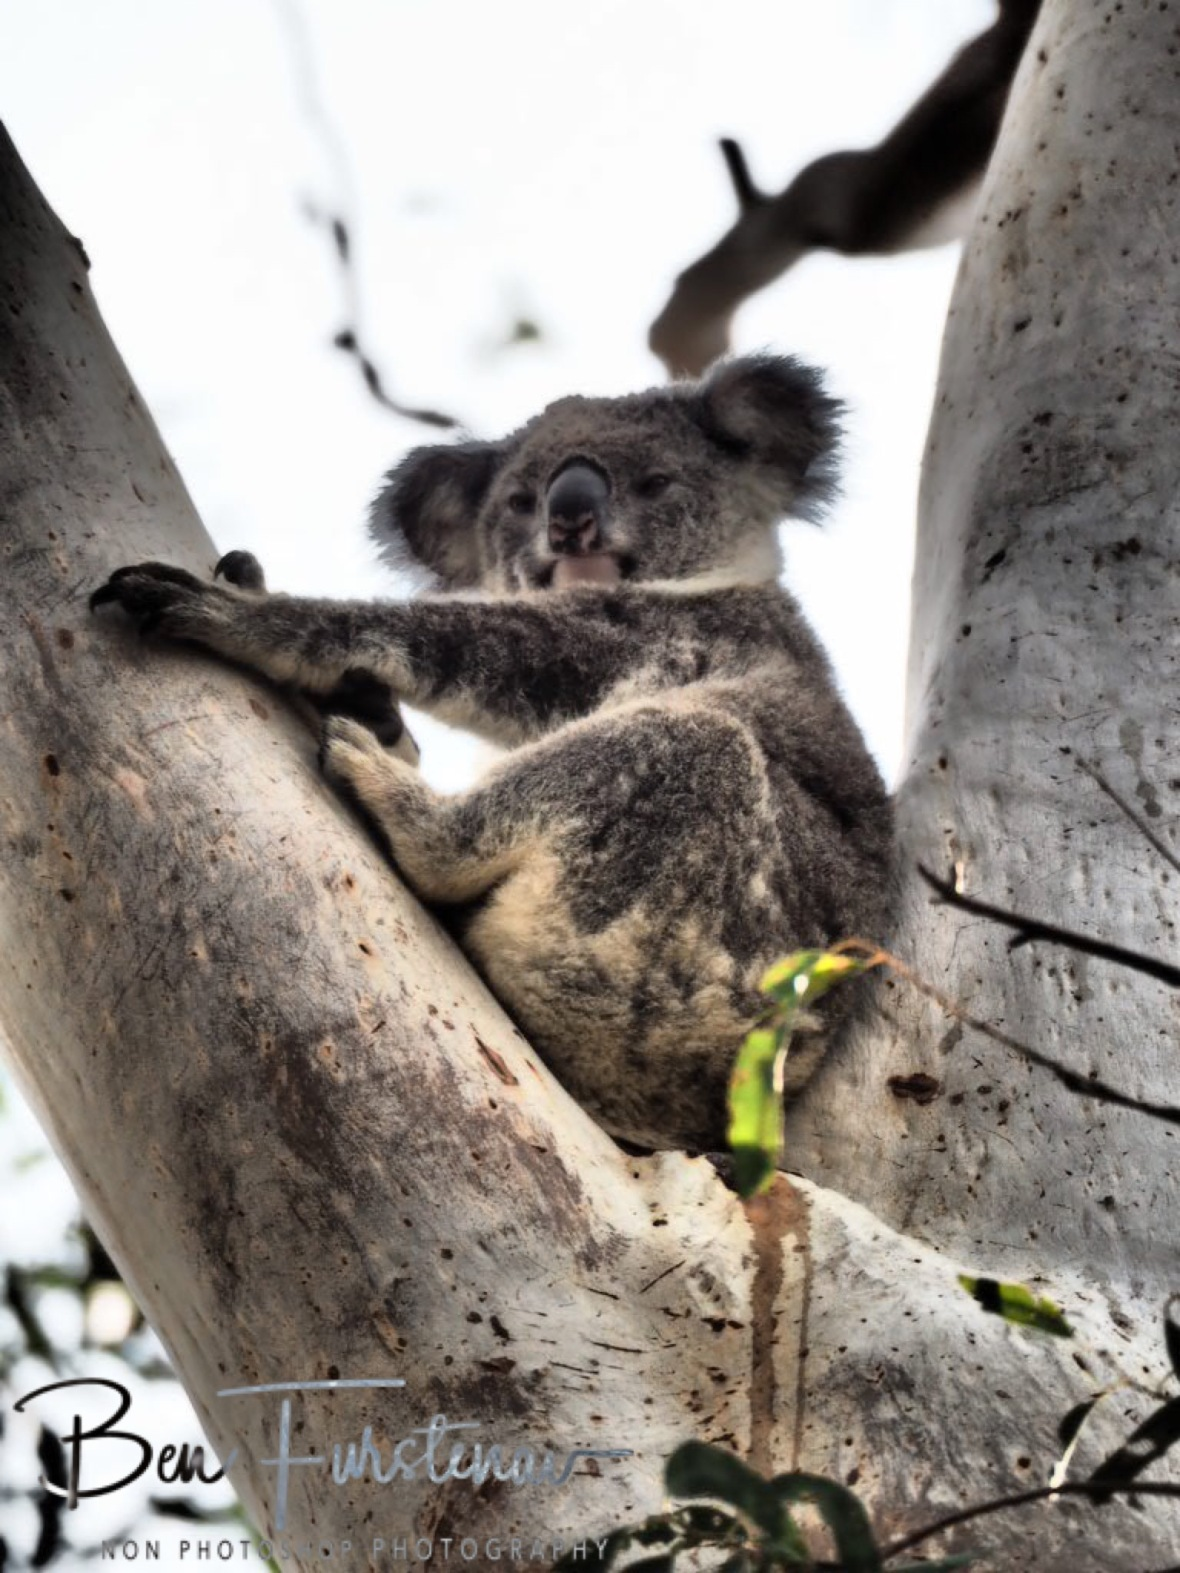 Koala with Antlers at Woodburn, Northern New South Wales, Australia